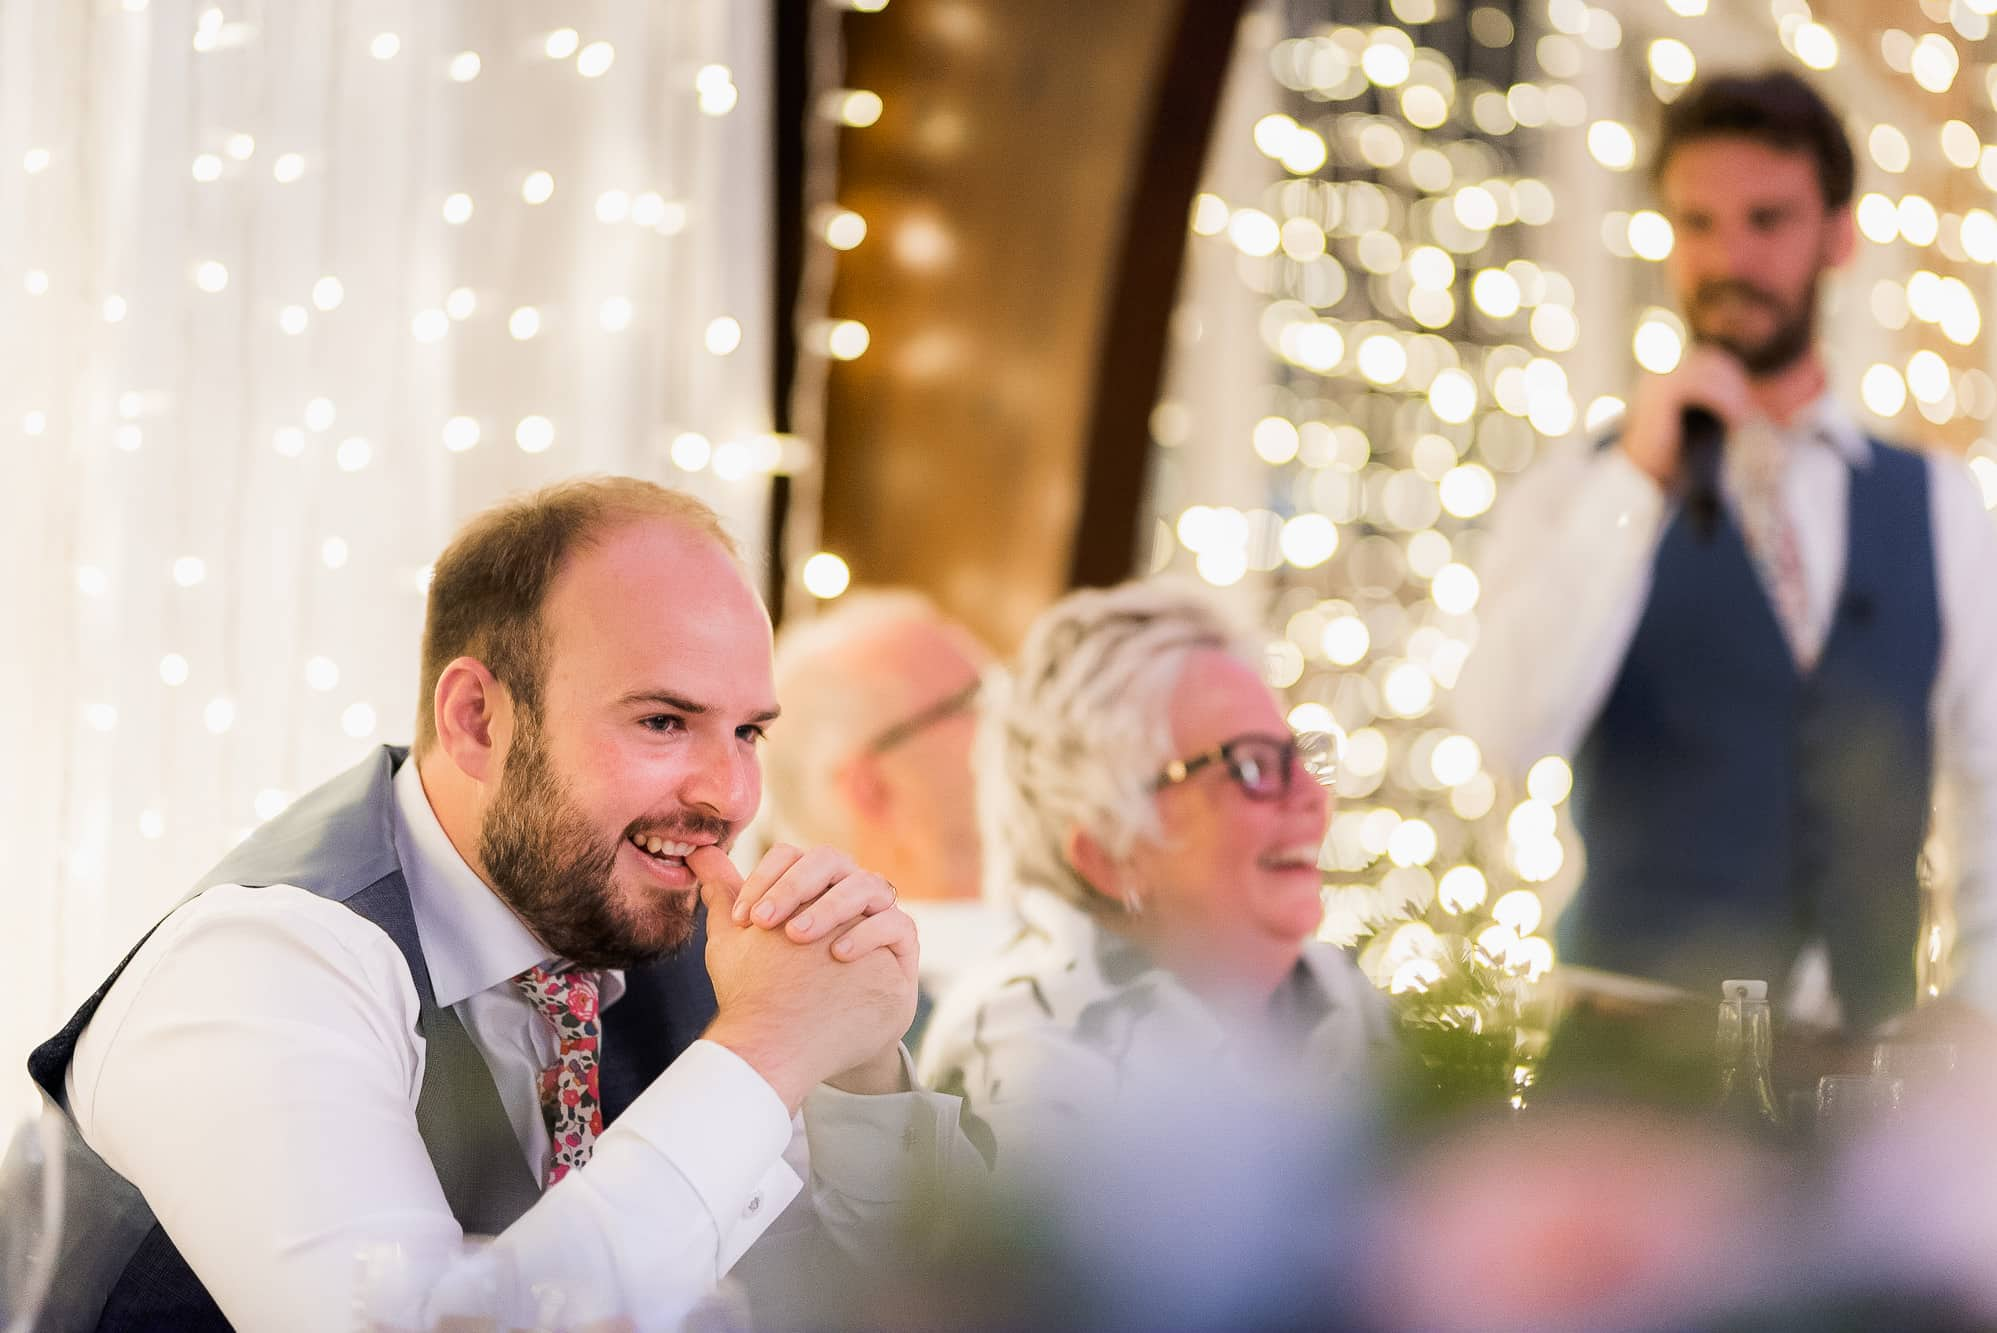 Groom looking on during speeches at Colshaw Hall